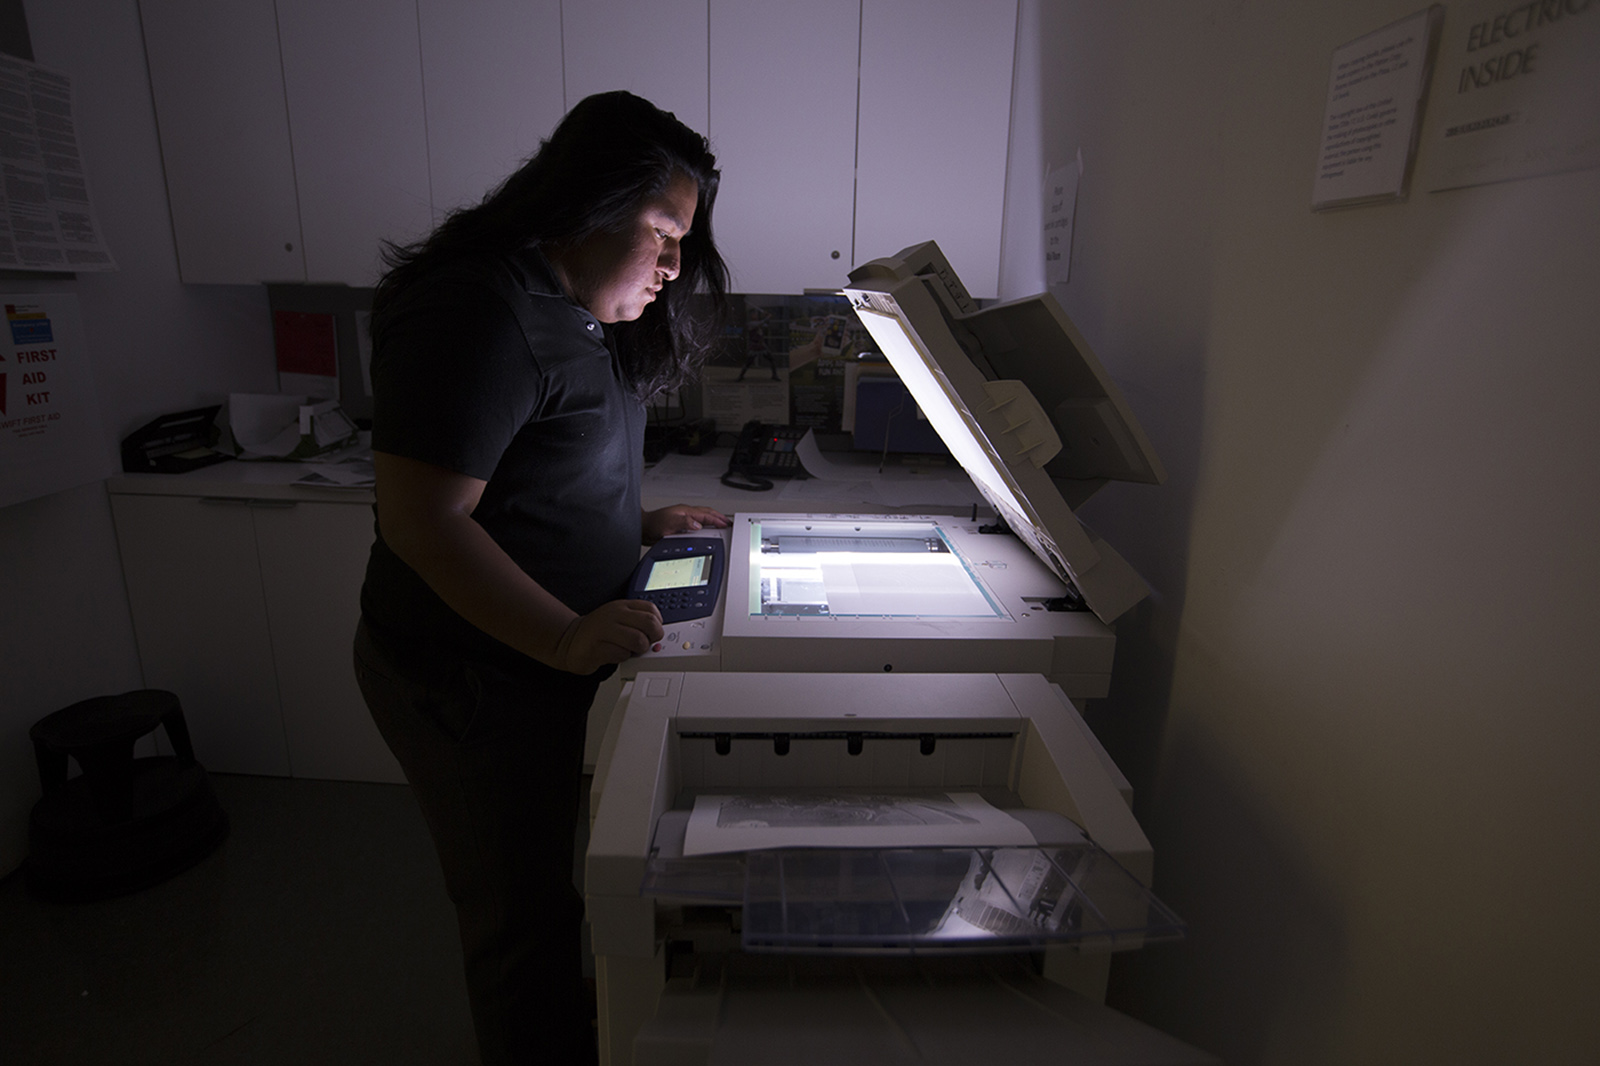 A young man with long hair uses a copy machine with the cover open, illuminating him in the dark room.